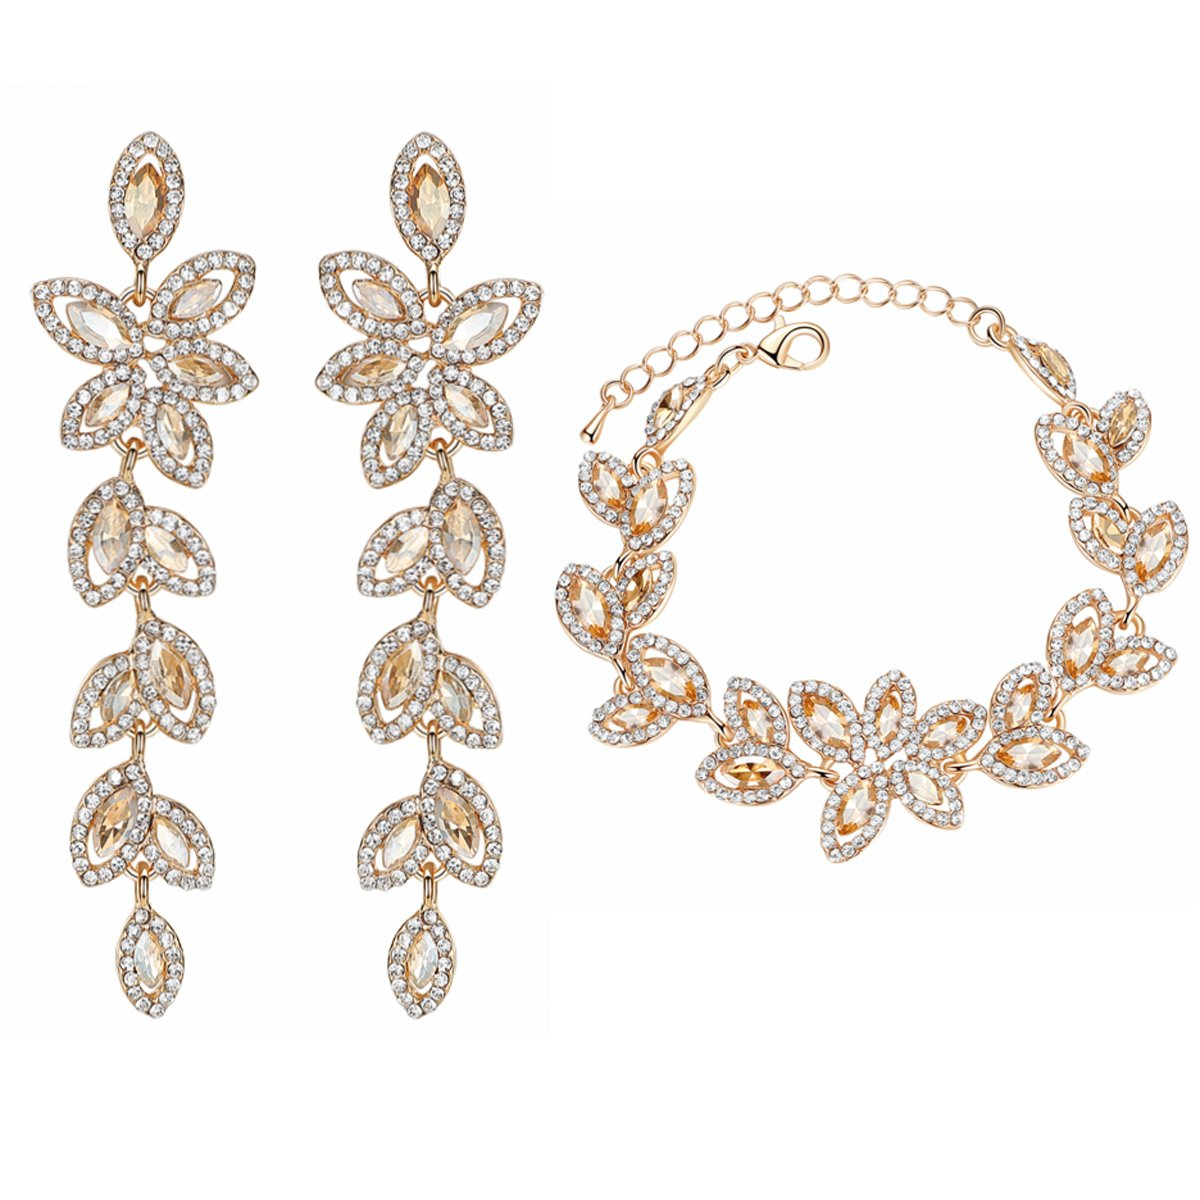 mecresh Champagne Rhinestone Leaf-Shape Earring and Bracelets Wedding Jewelry Sets for Women Brides Bridesmaid